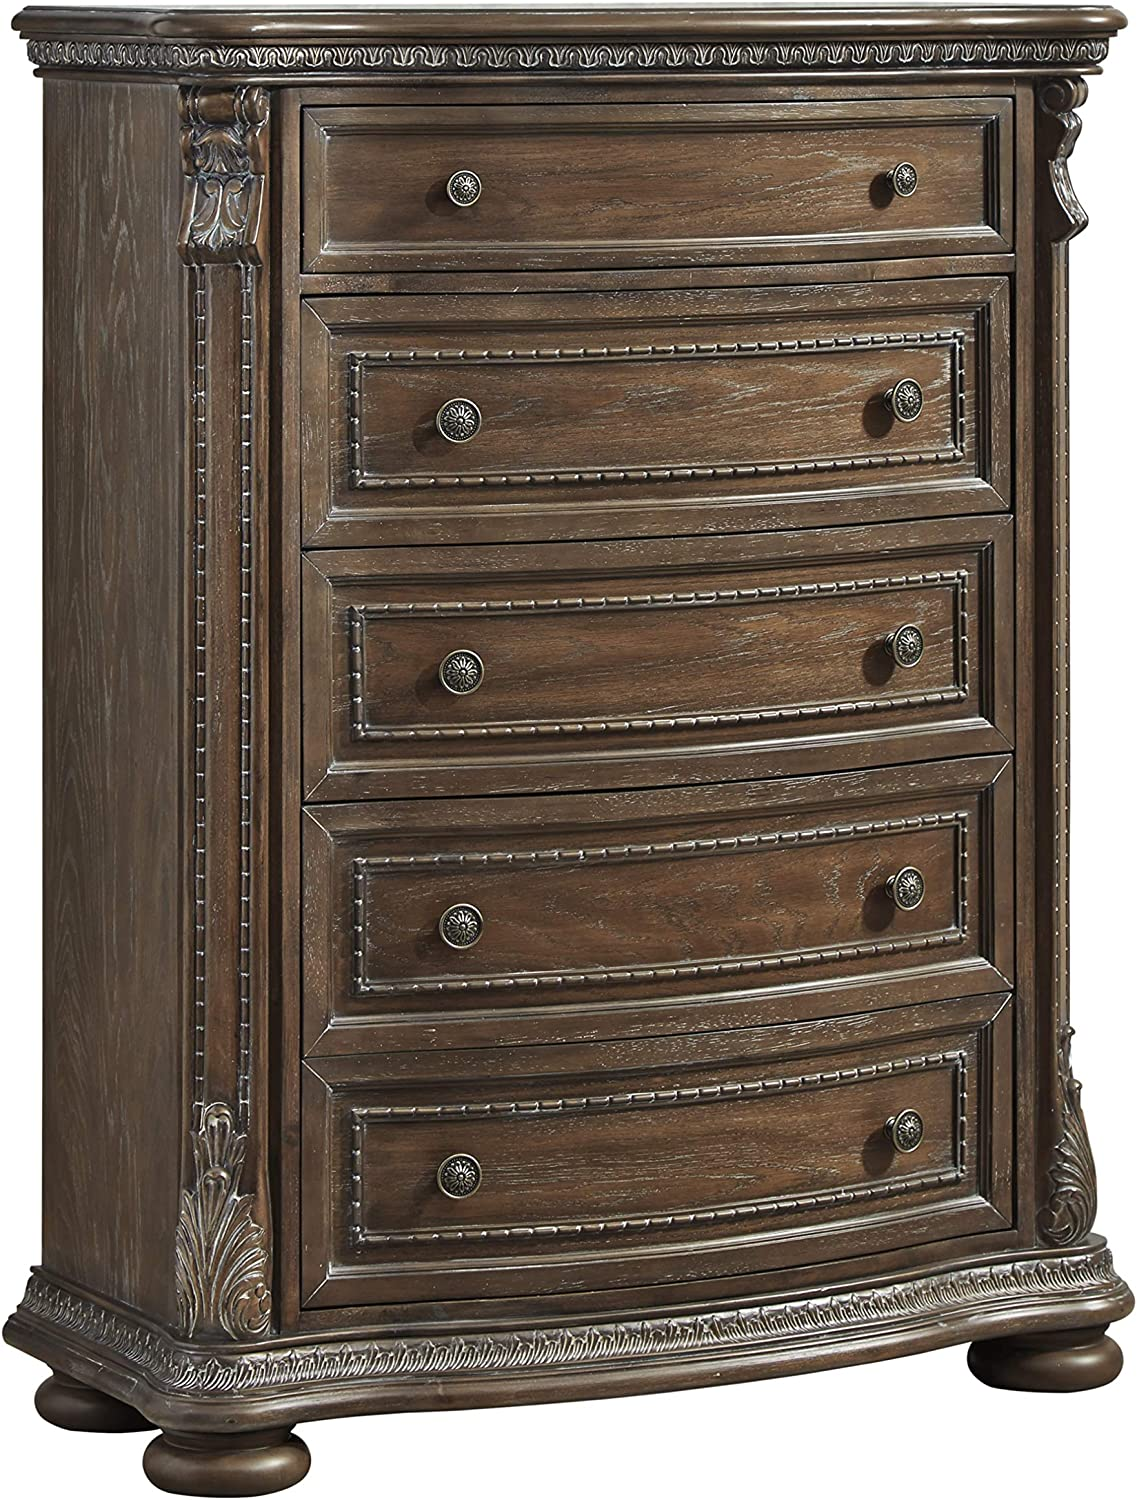 Signature Design By Ashley - Charmond Five Drawer Chest - Brown